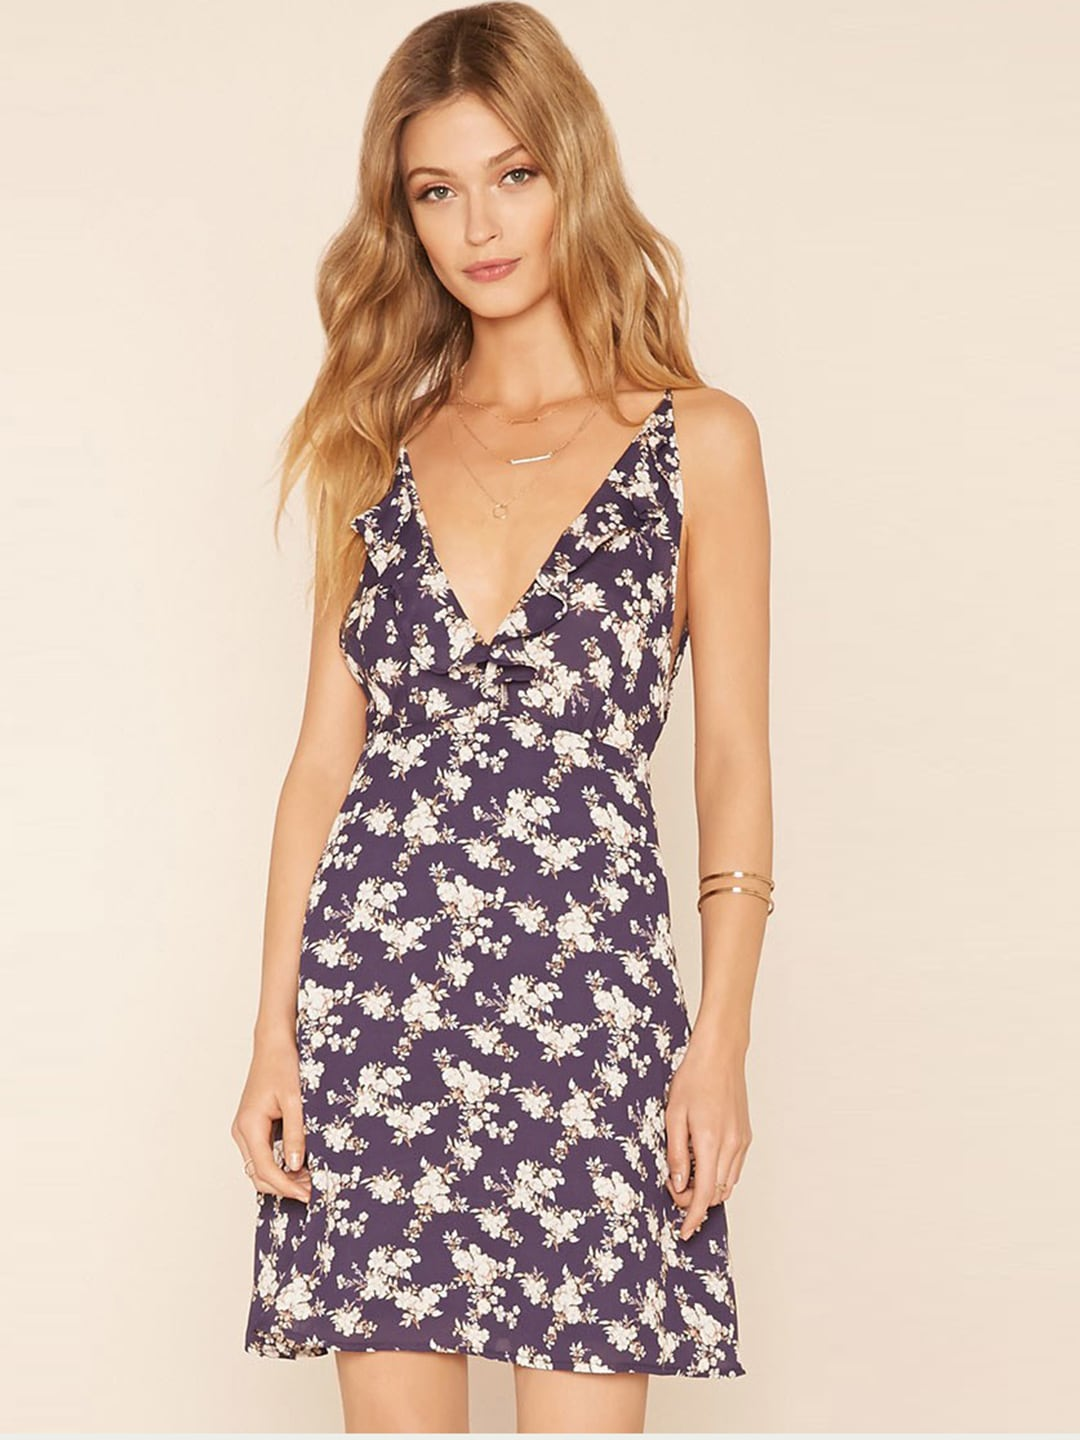 fea8f146b035 FOREVER 21 Women Navy Printed Fit   Flare Dress